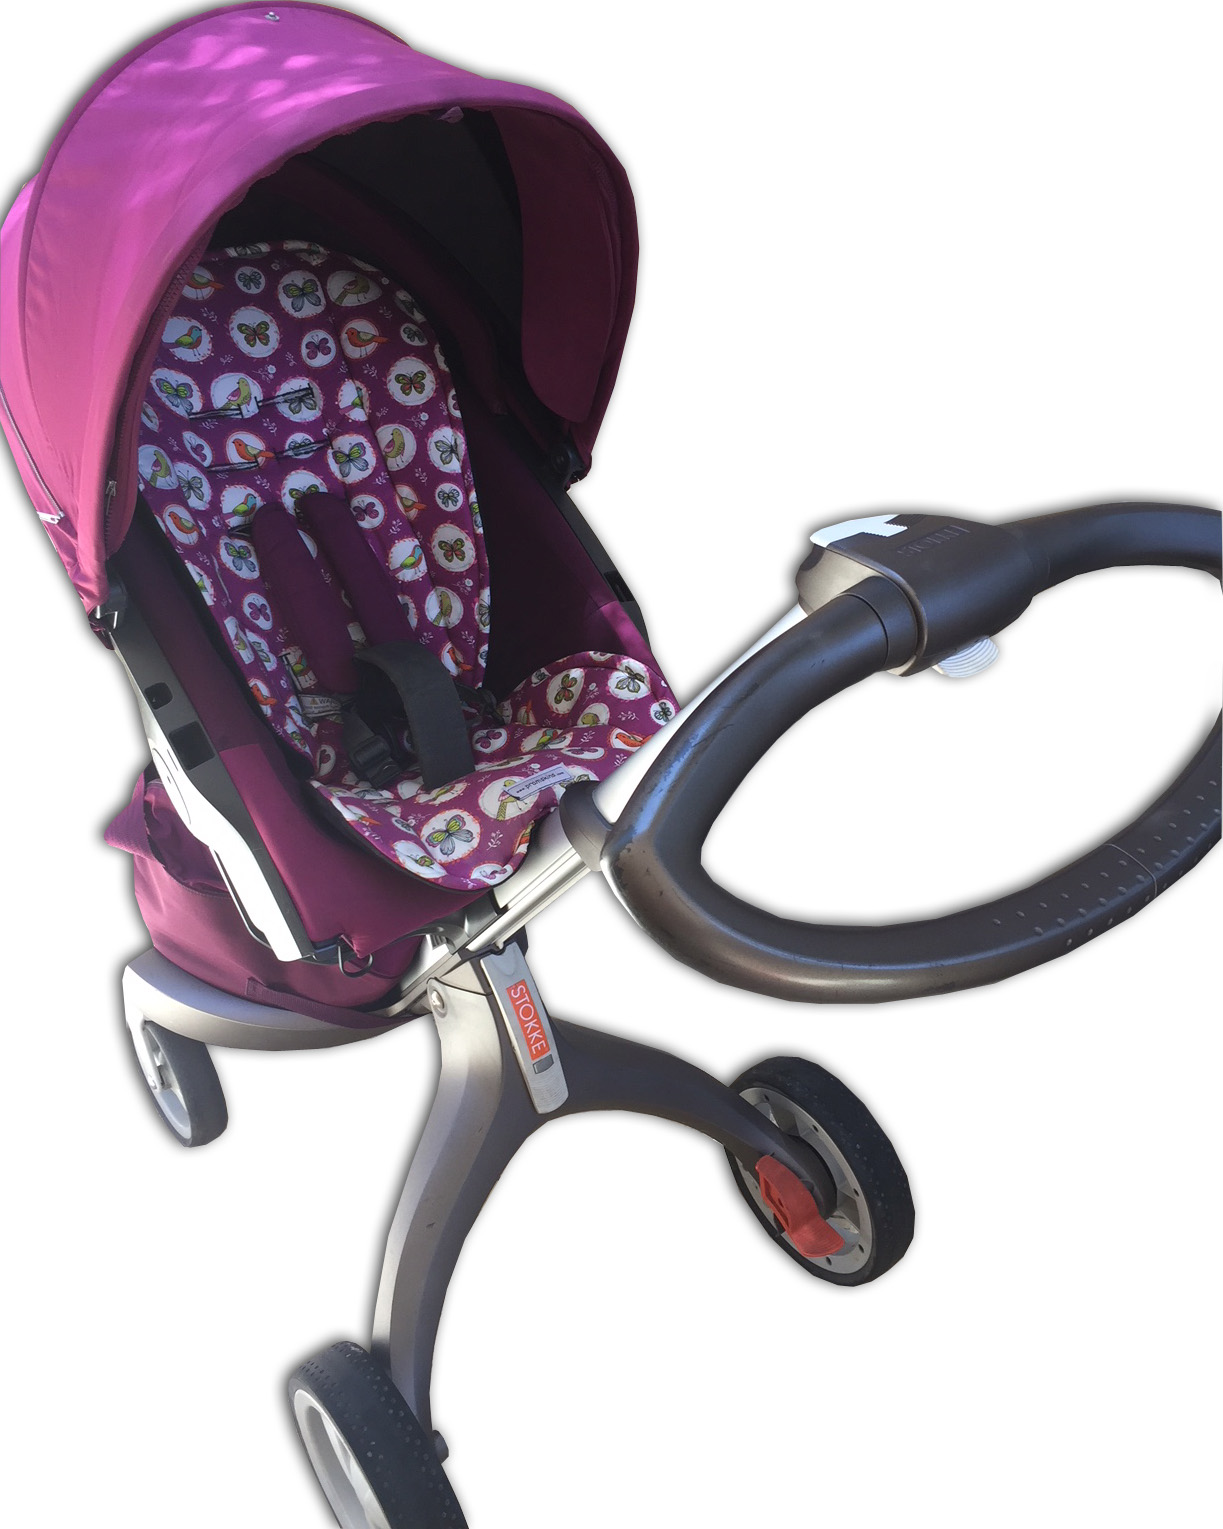 stokke-xplory-magic-garden-pram-liner-set-1-shadowed.jpg